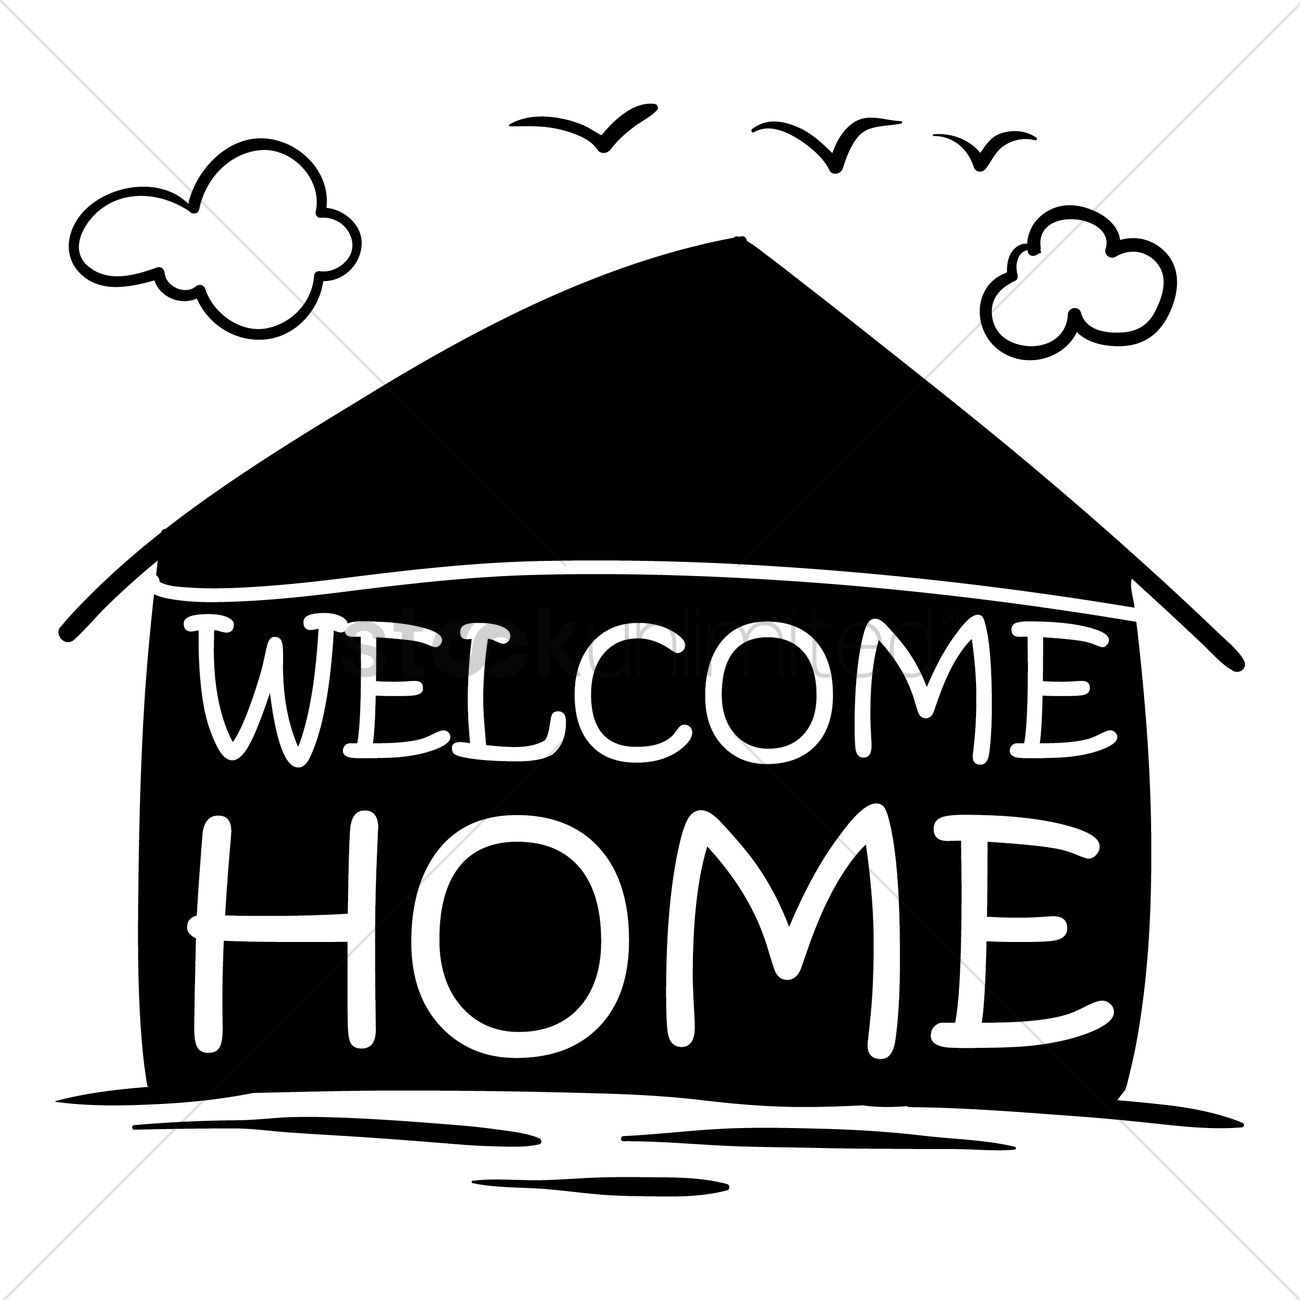 welcome home label vector image 1827351 stockunlimited rh stockunlimited com Welcome Clip Art B Welcome Clip Art B